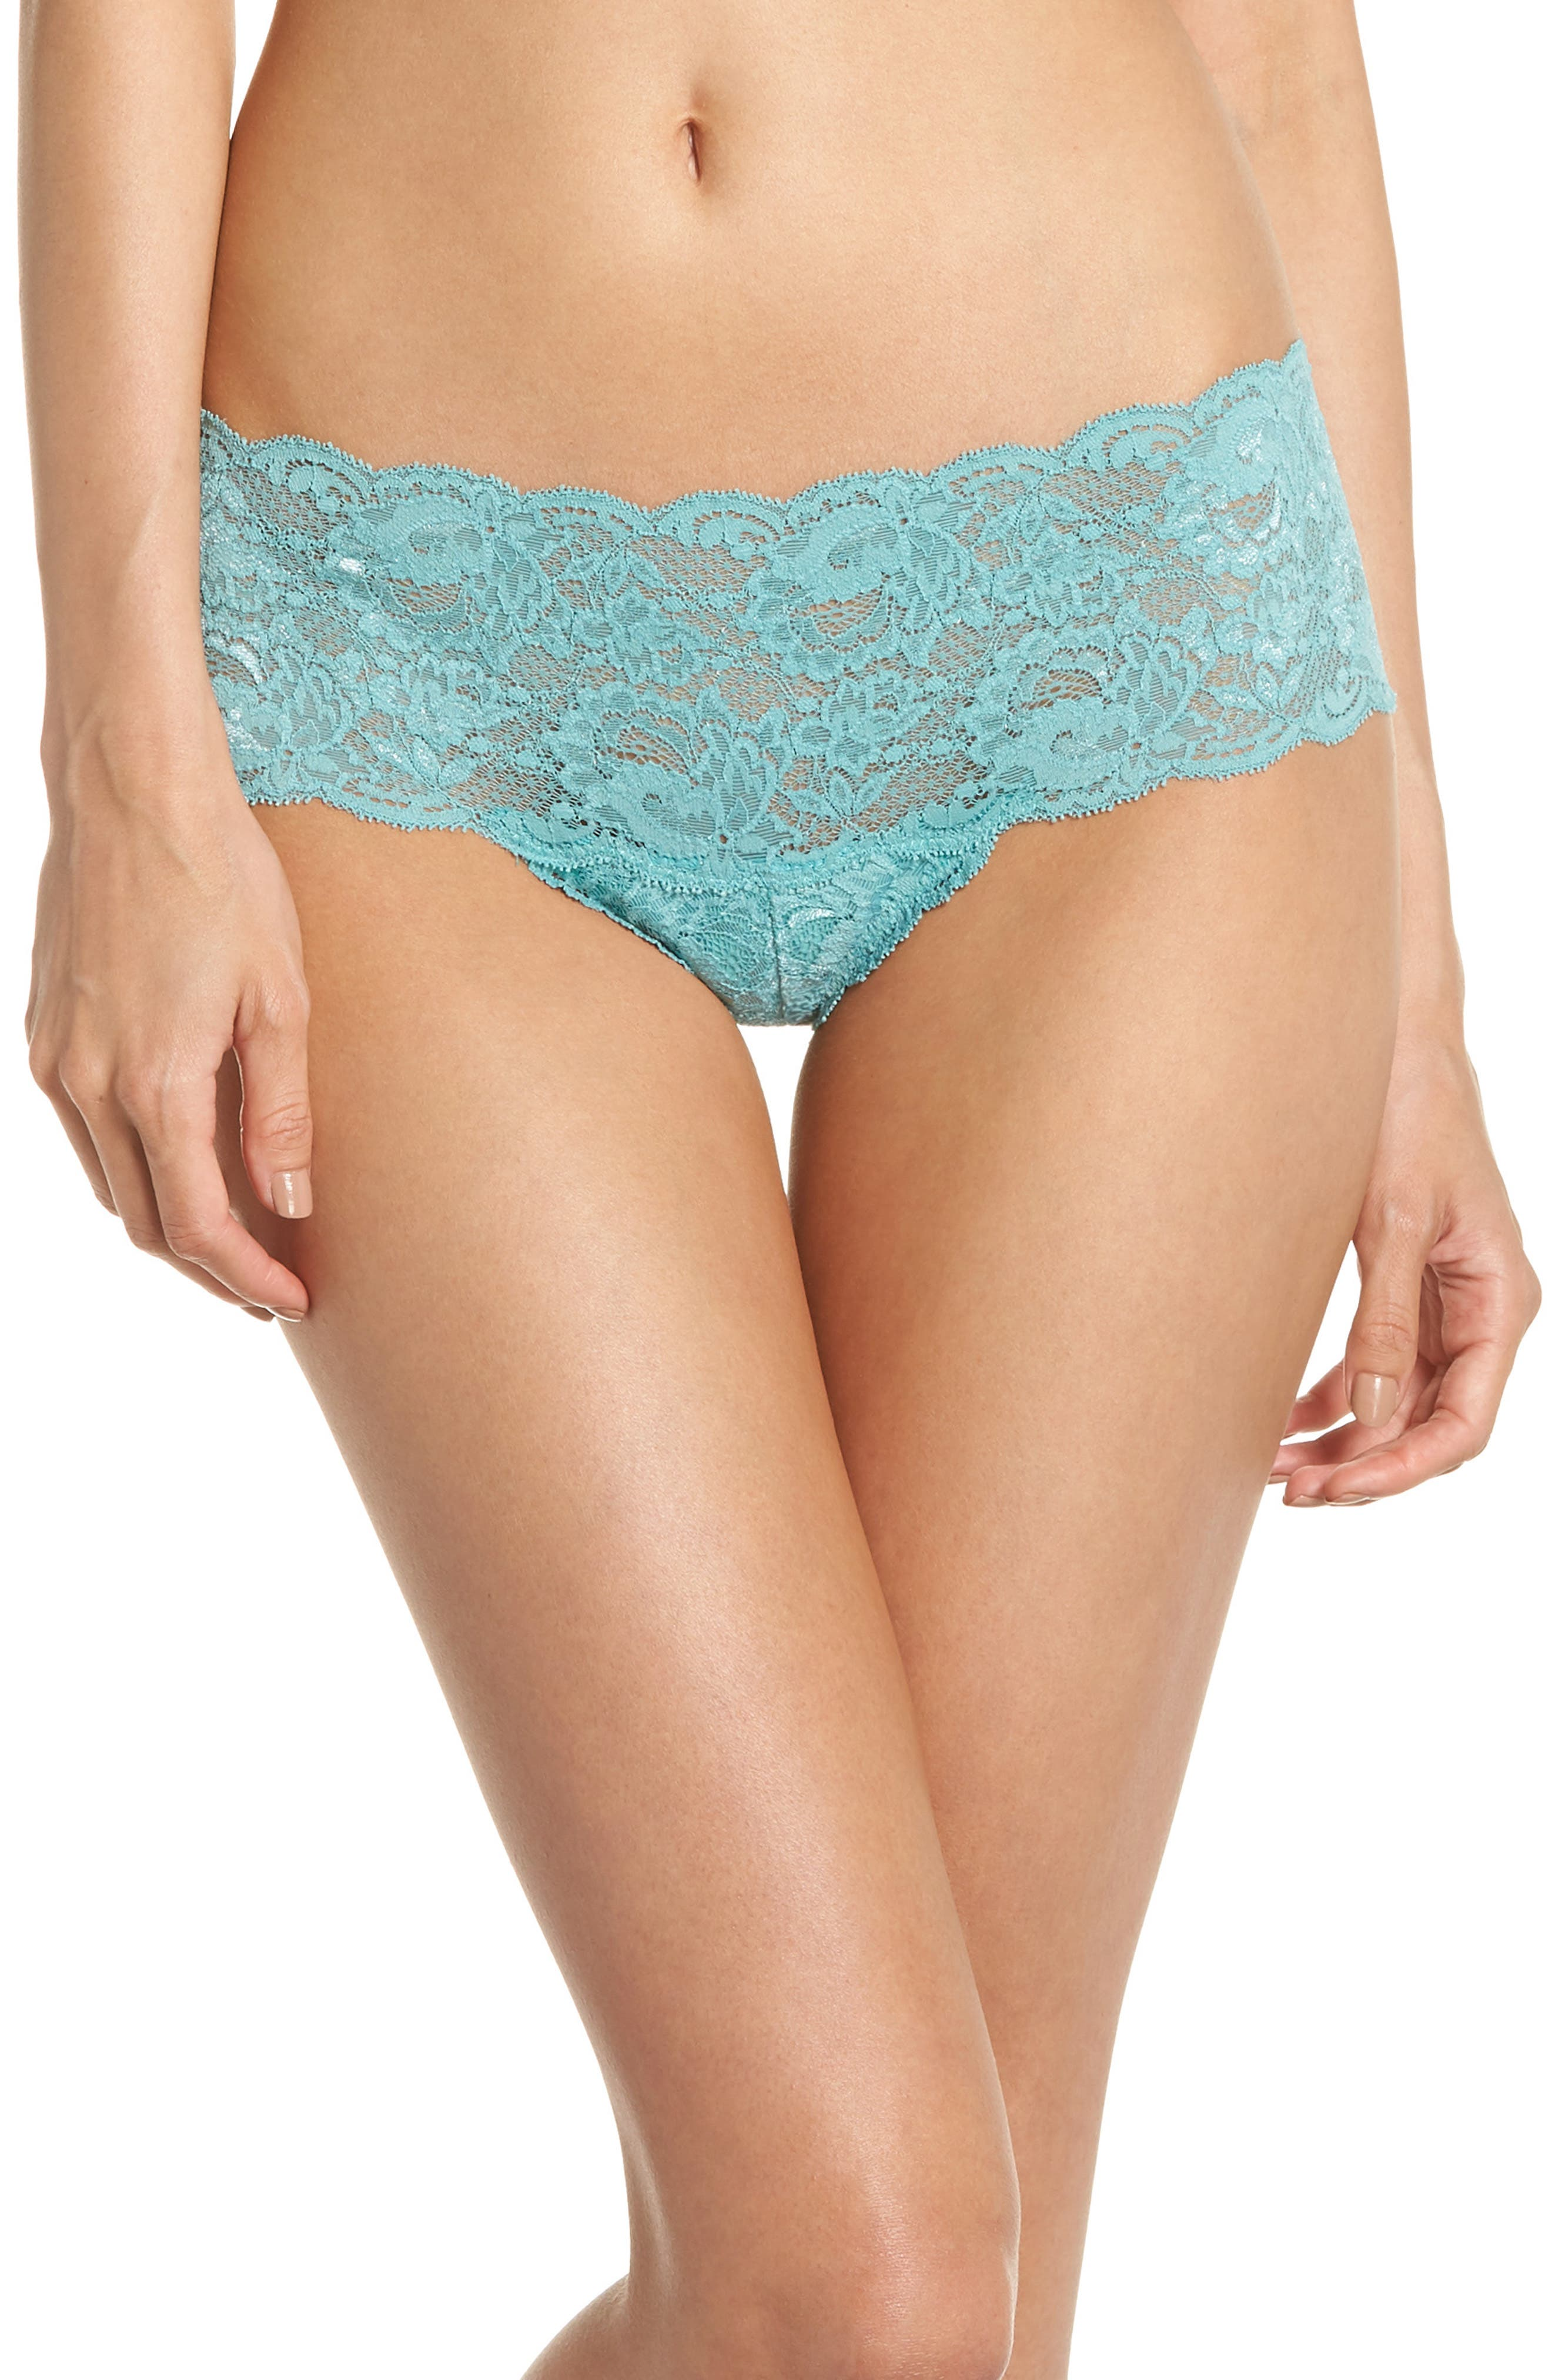 'Never Say Never' Hipster Briefs,                             Main thumbnail 1, color,                             Dusty Turquoise